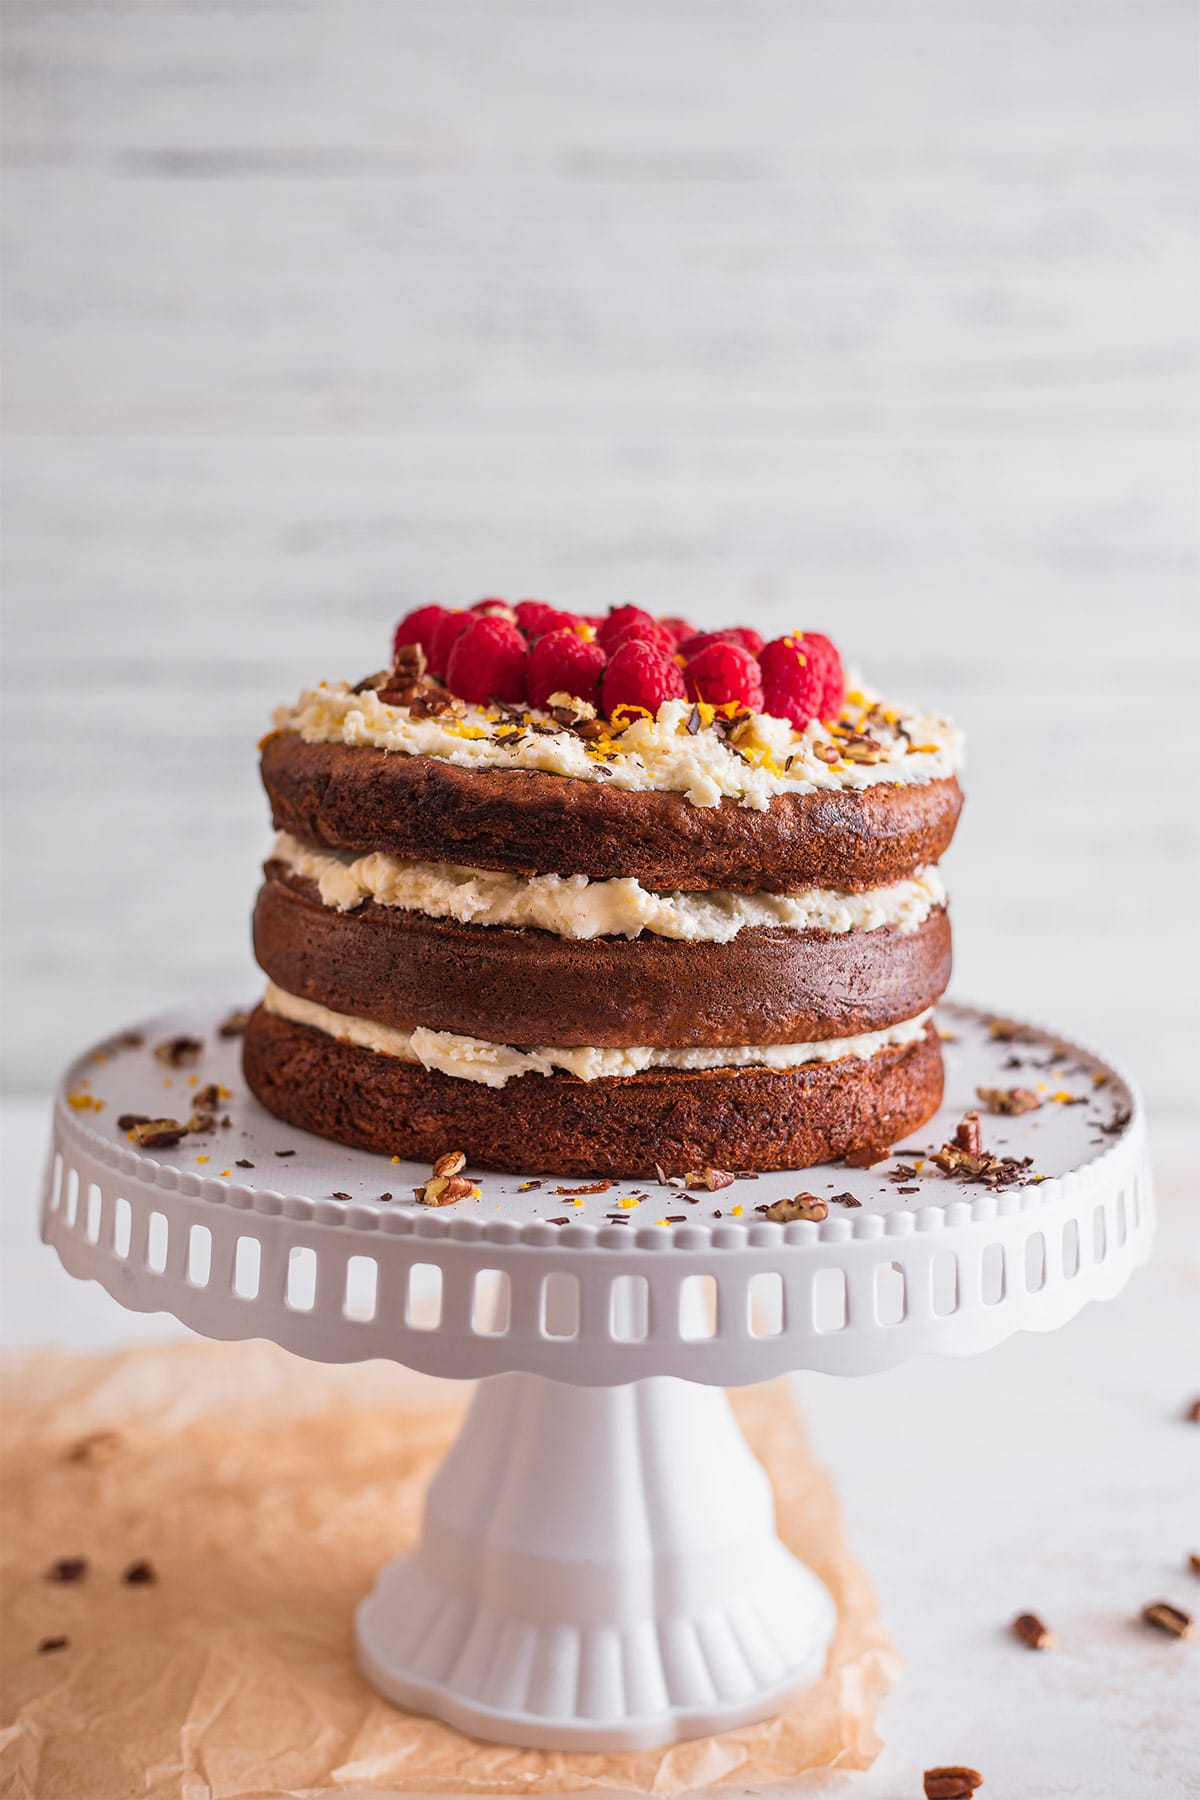 Vegan carrot cake with frosting on a cake stand